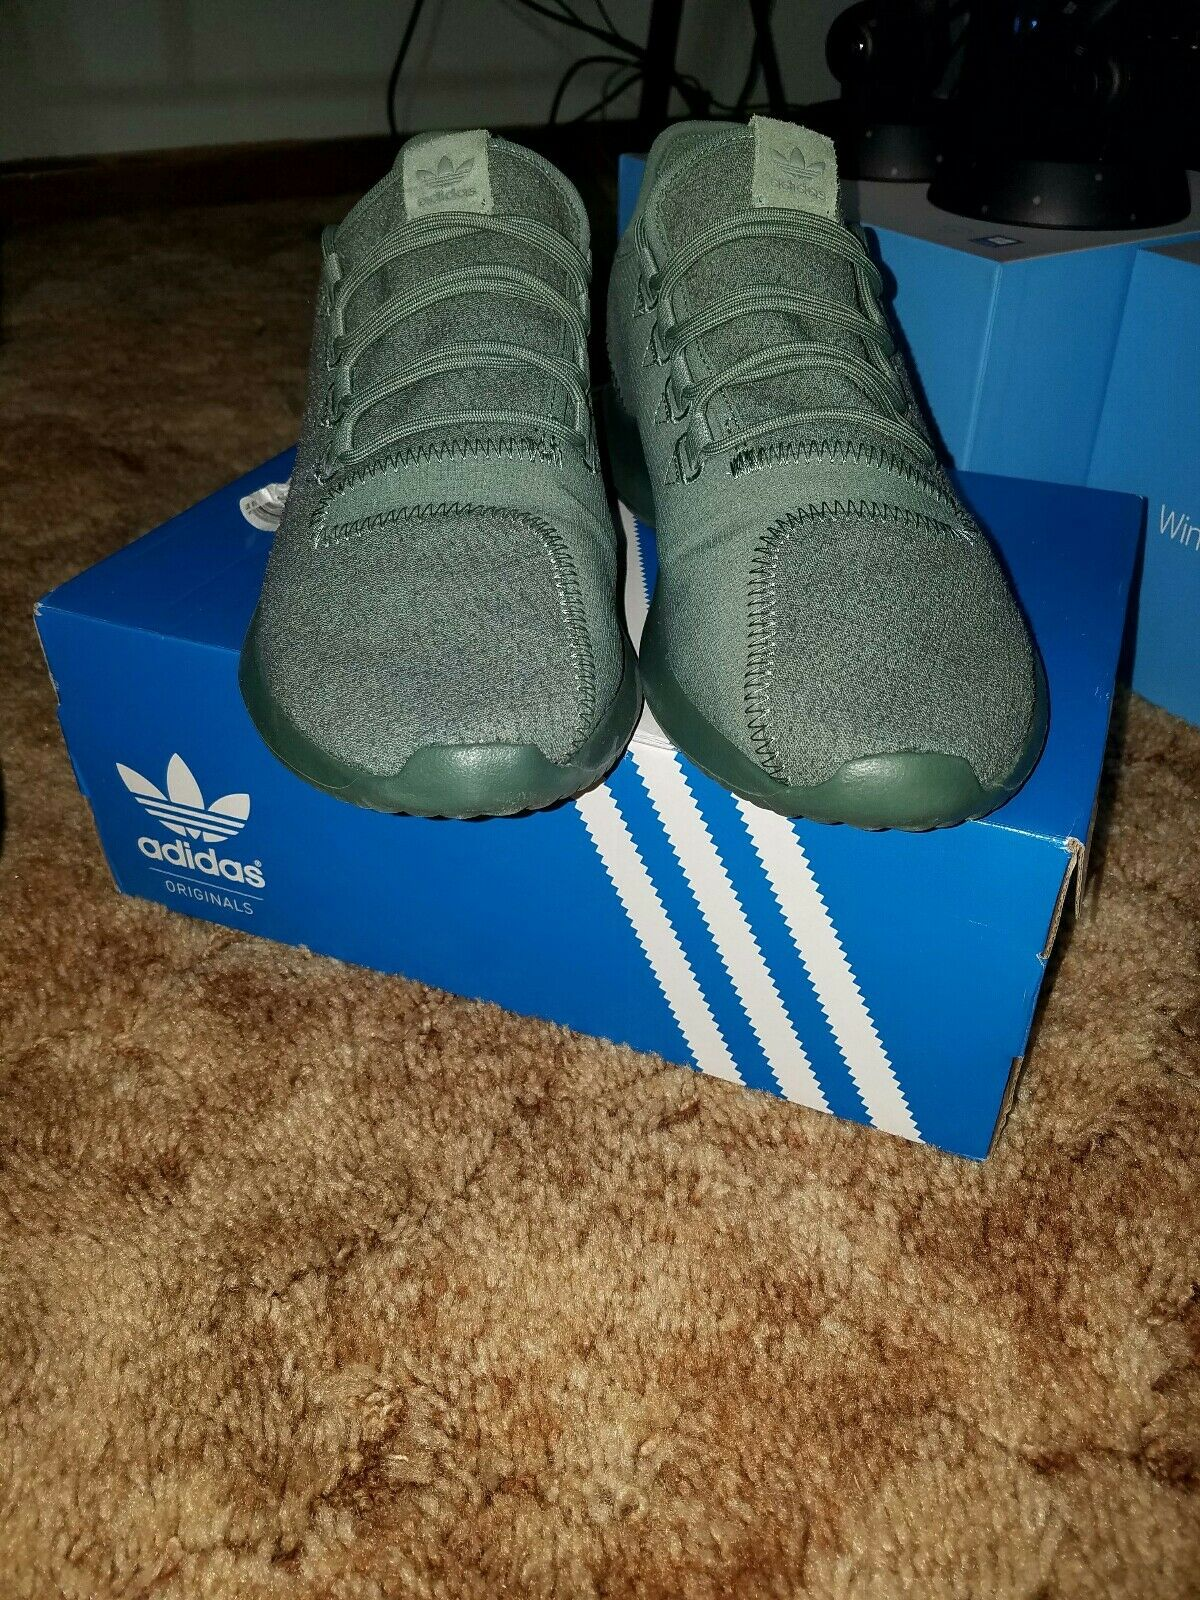 New ADIDAS Originals Tubular Shadow Sneaker Mens green size 9.5 The latest discount shoes for men and women